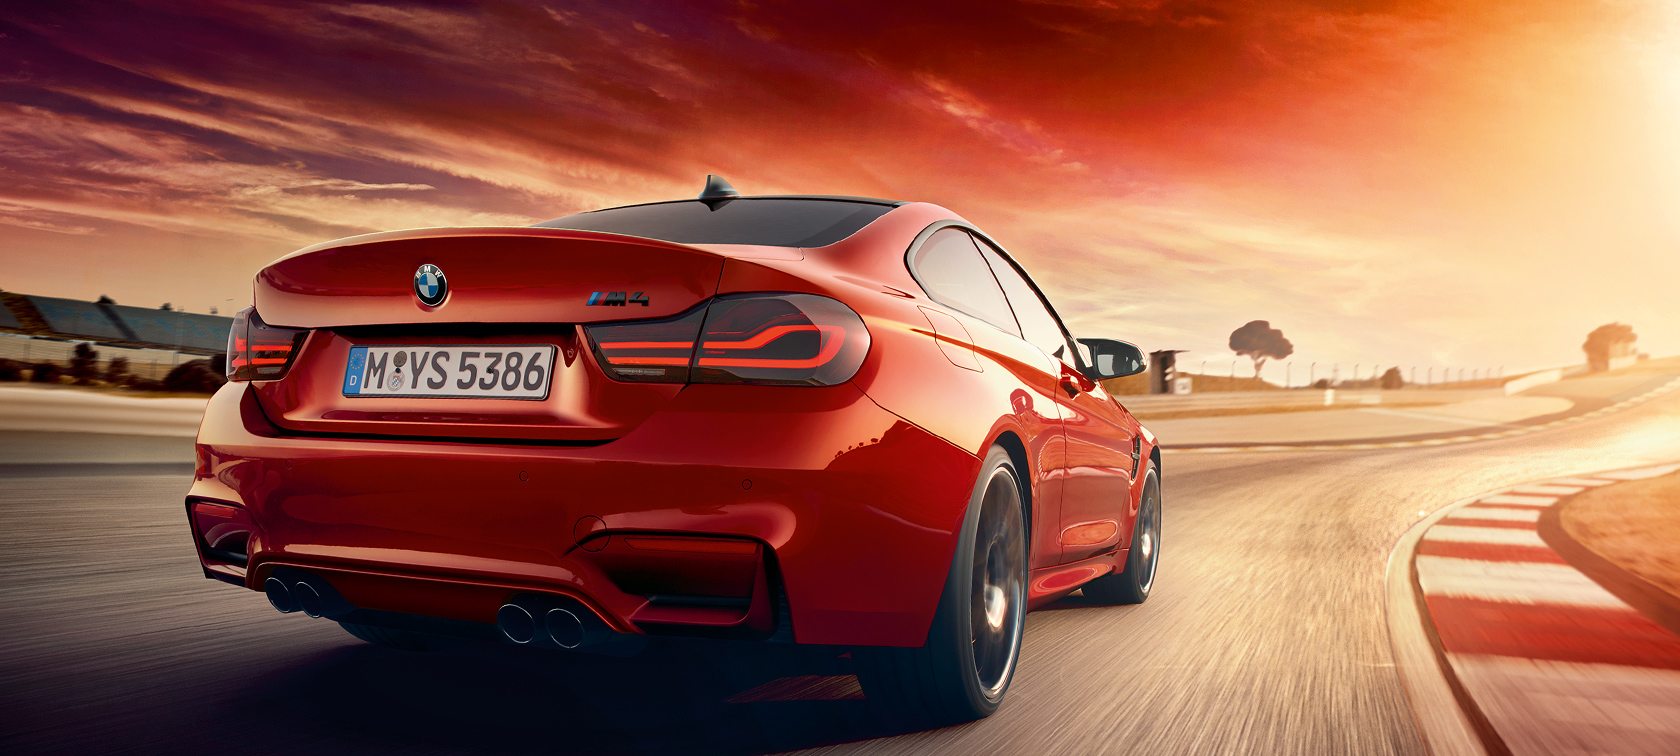 BMW M-Series M4 Coupe red: sunset road drive